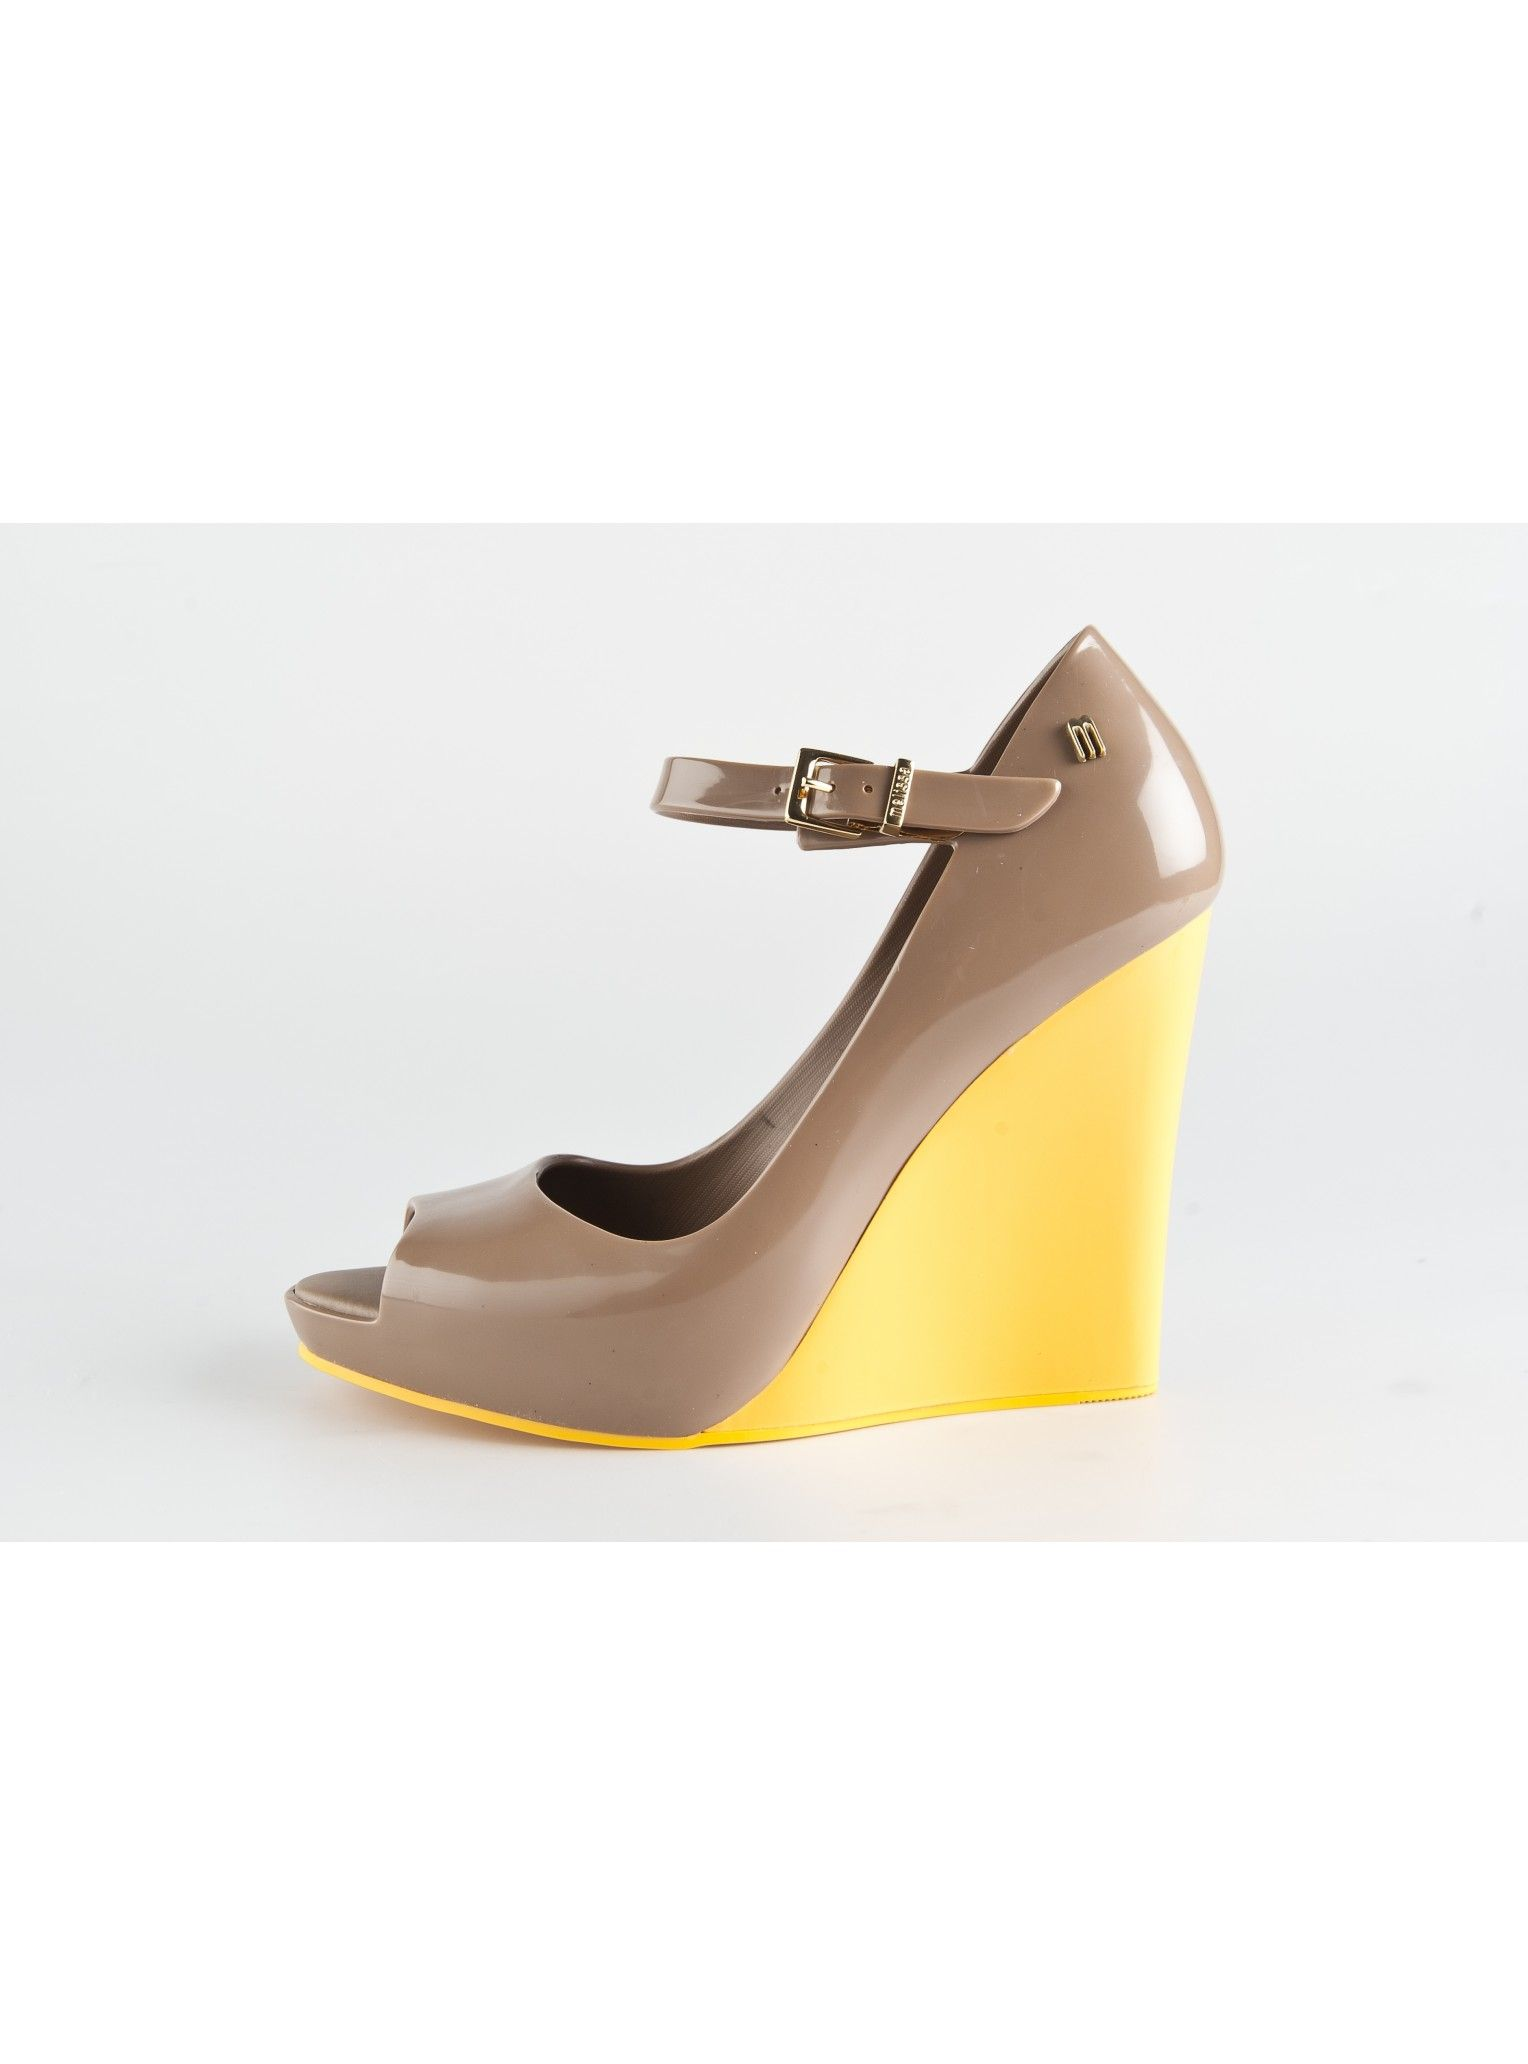 cbab33871 Melissa Prism Wedge in Toffee Contrast   Collaborations with Vivienne  Westwood, Jason Wu, Pedro Lourenco, Campana   Buy Melissa Plastic Shoes,  Sandals, ...